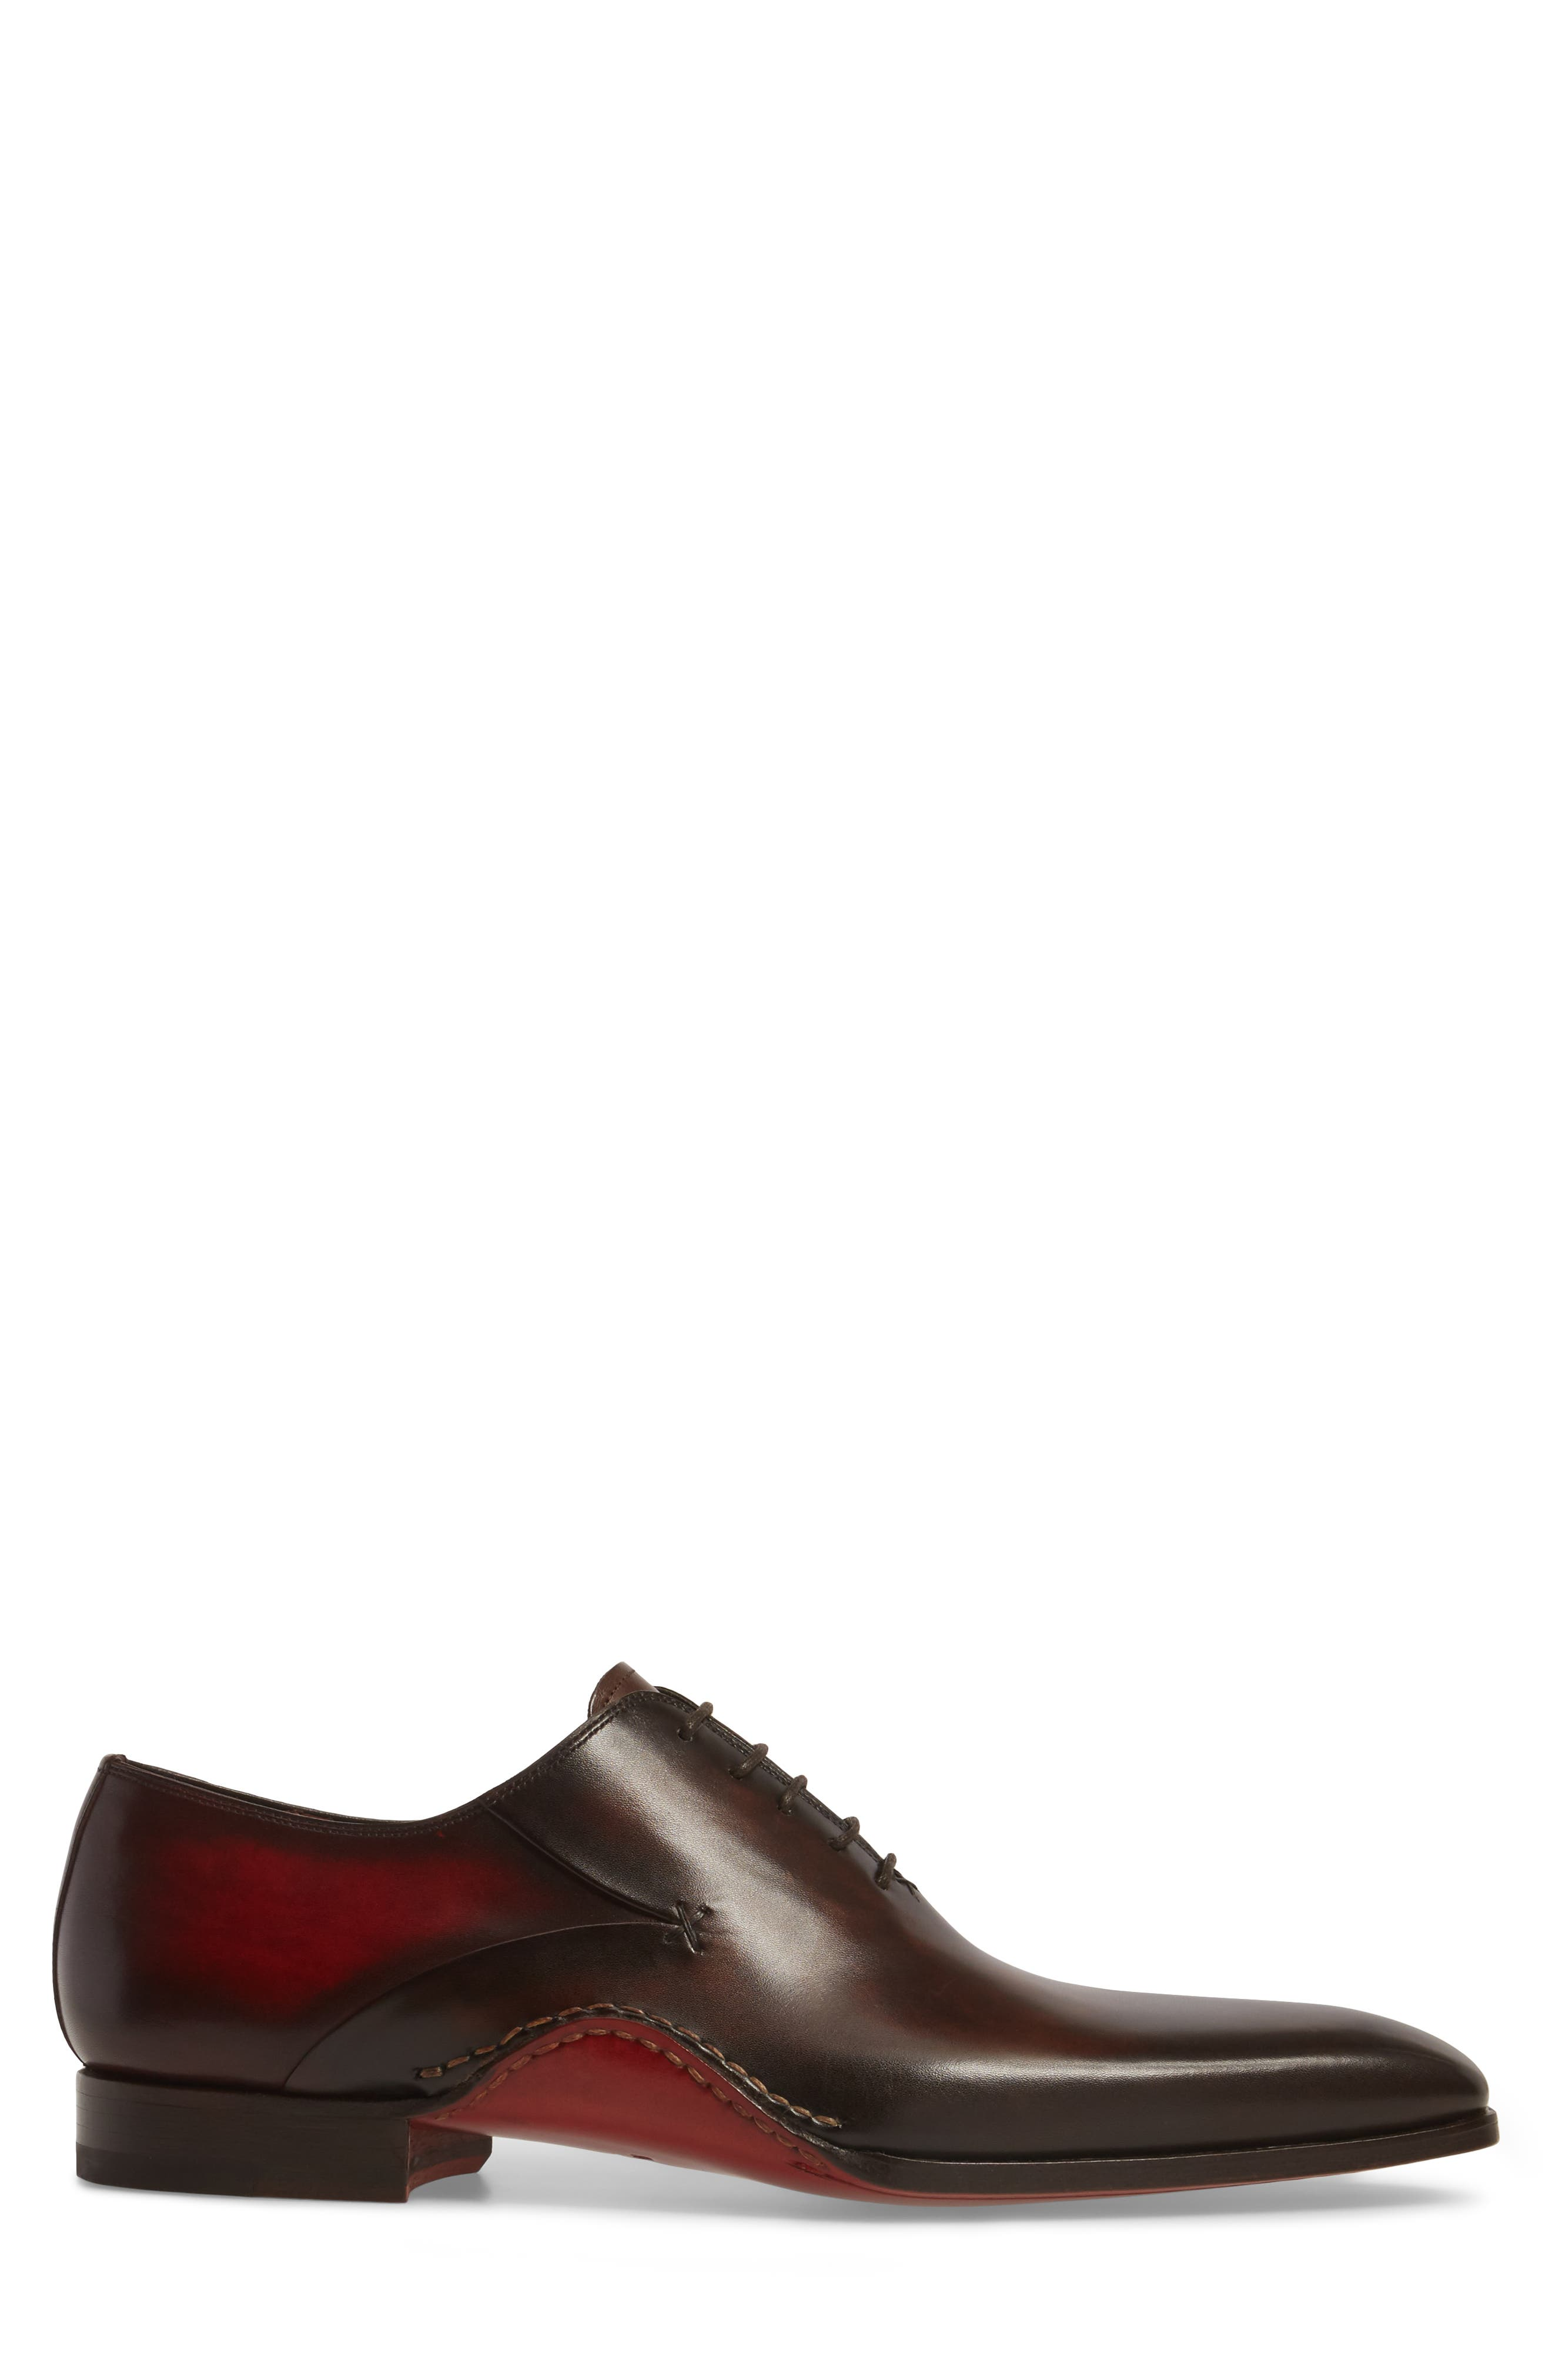 MAGNANNI, Cantabria Plain Toe Oxford, Alternate thumbnail 3, color, BROWN/ RED LEATHER